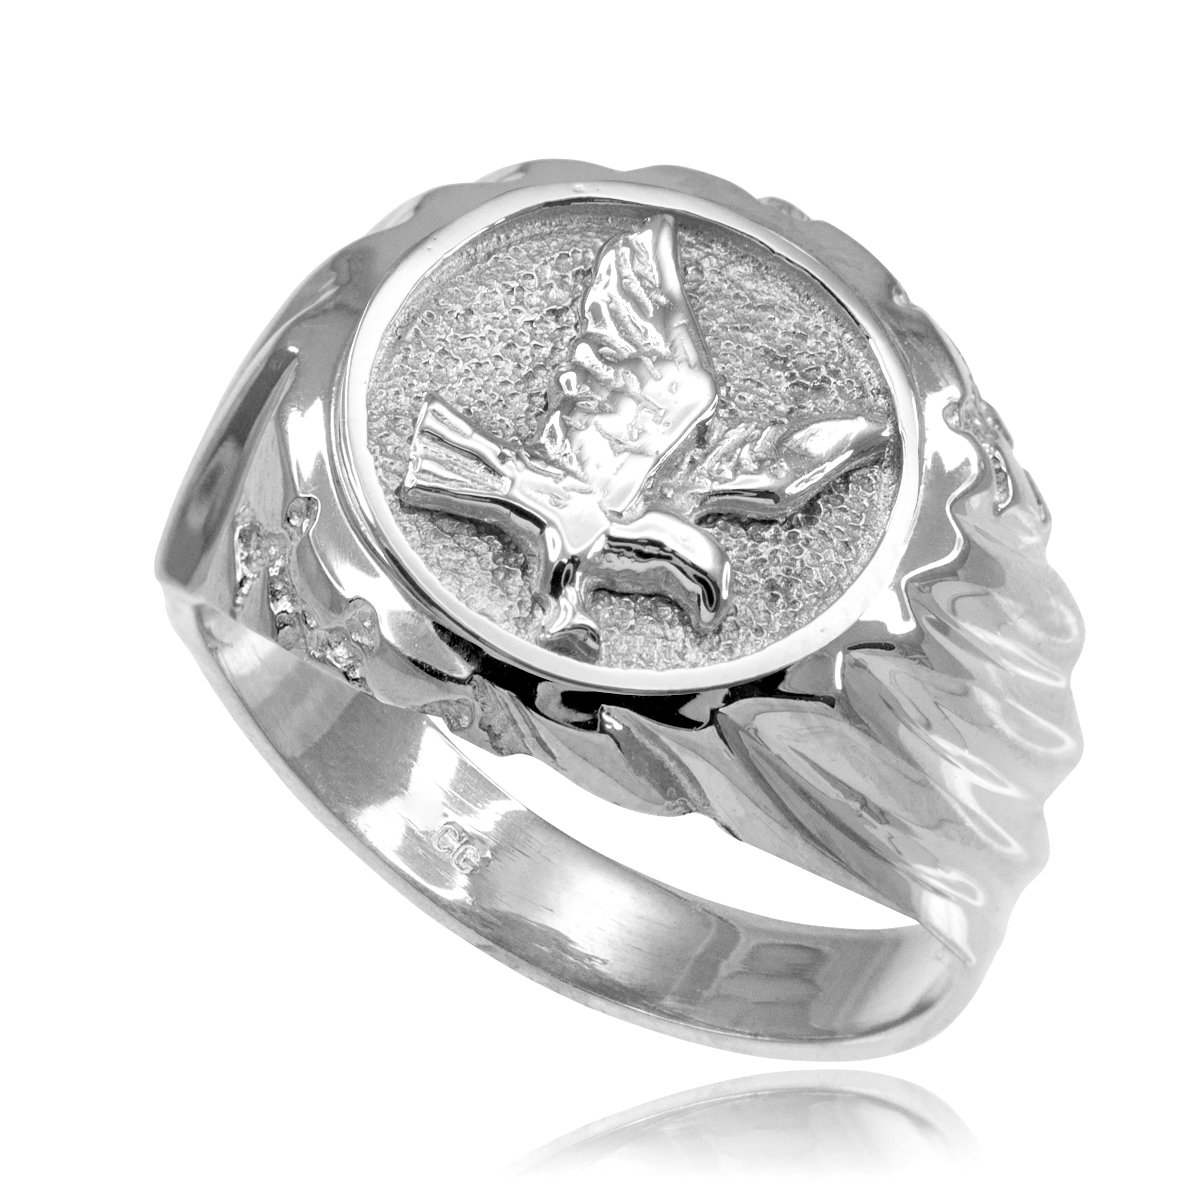 High Polish 925 Sterling Silver American Eagle Ring for Men (Size 6.5)